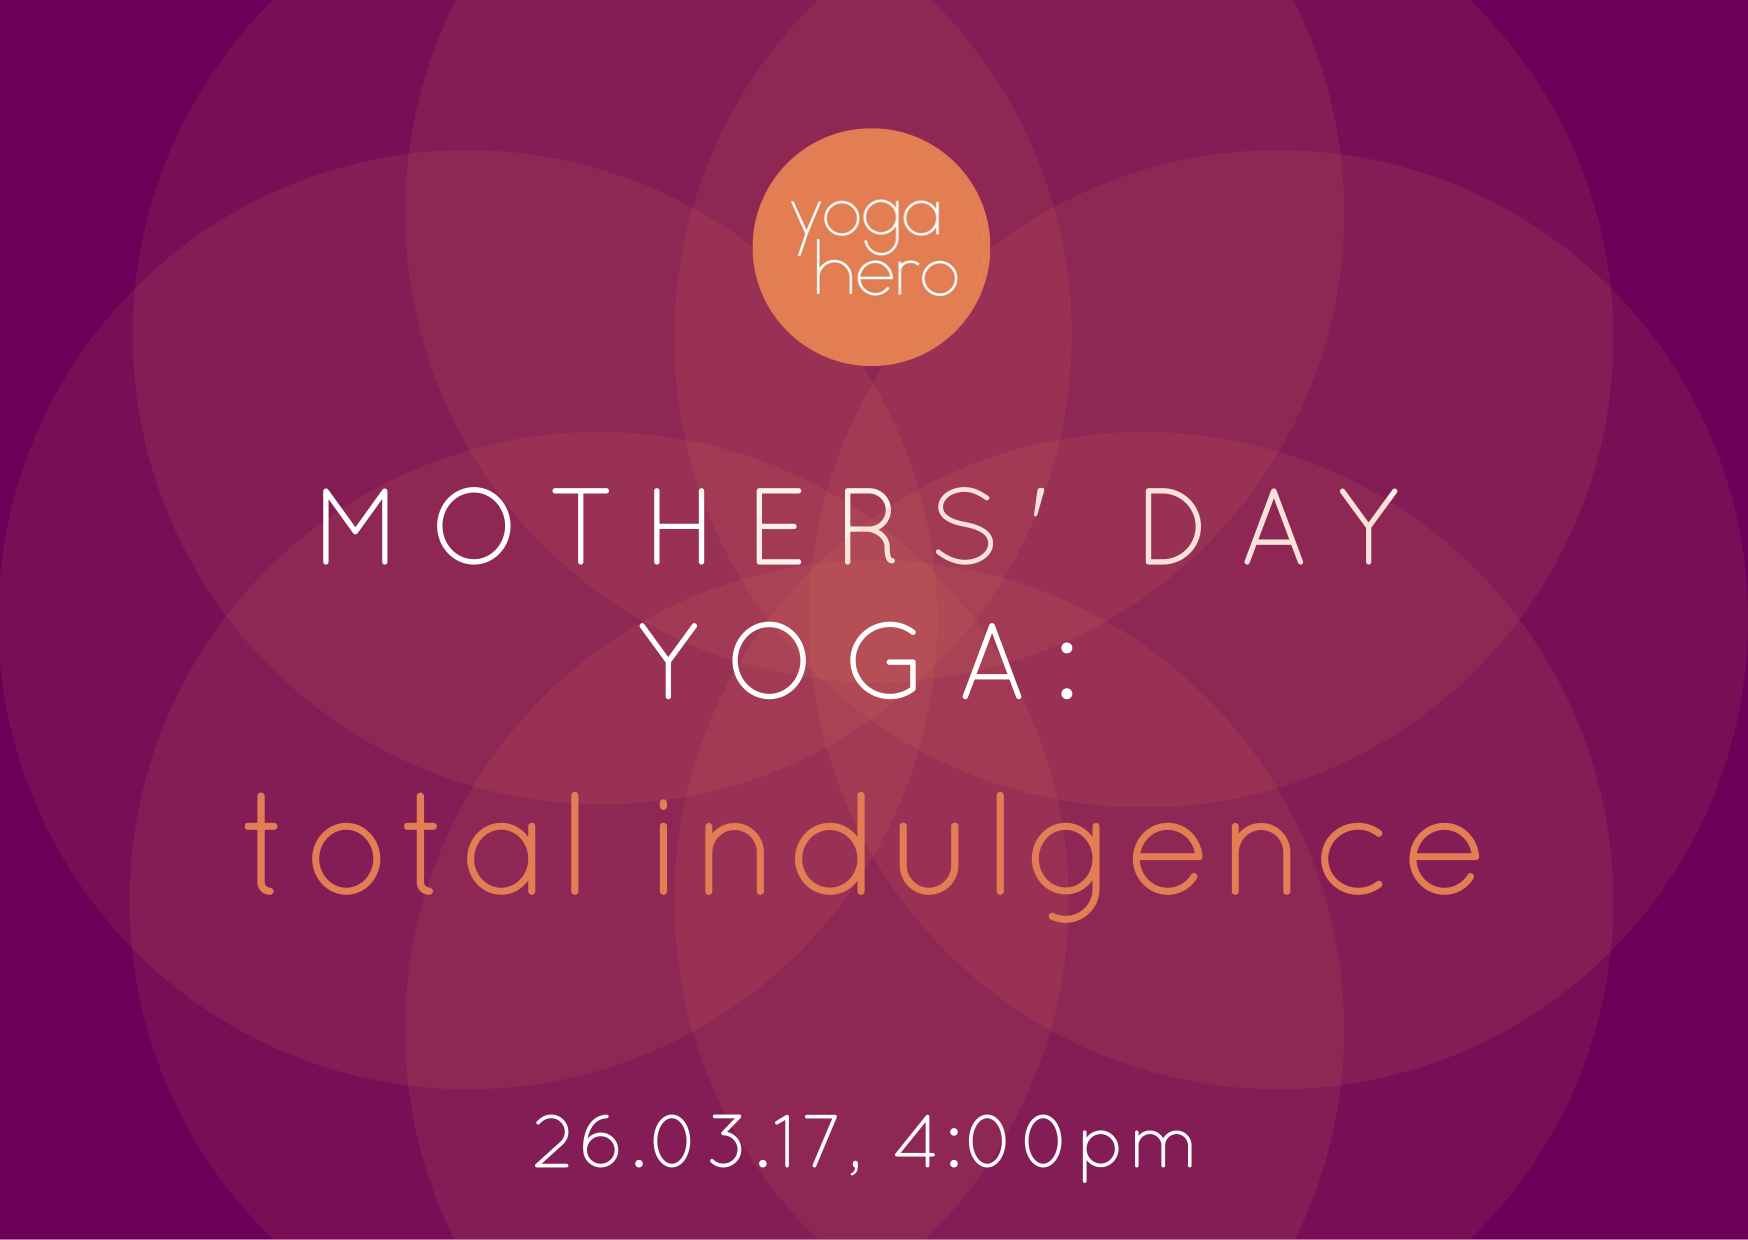 Mothers' Day Yoga Session